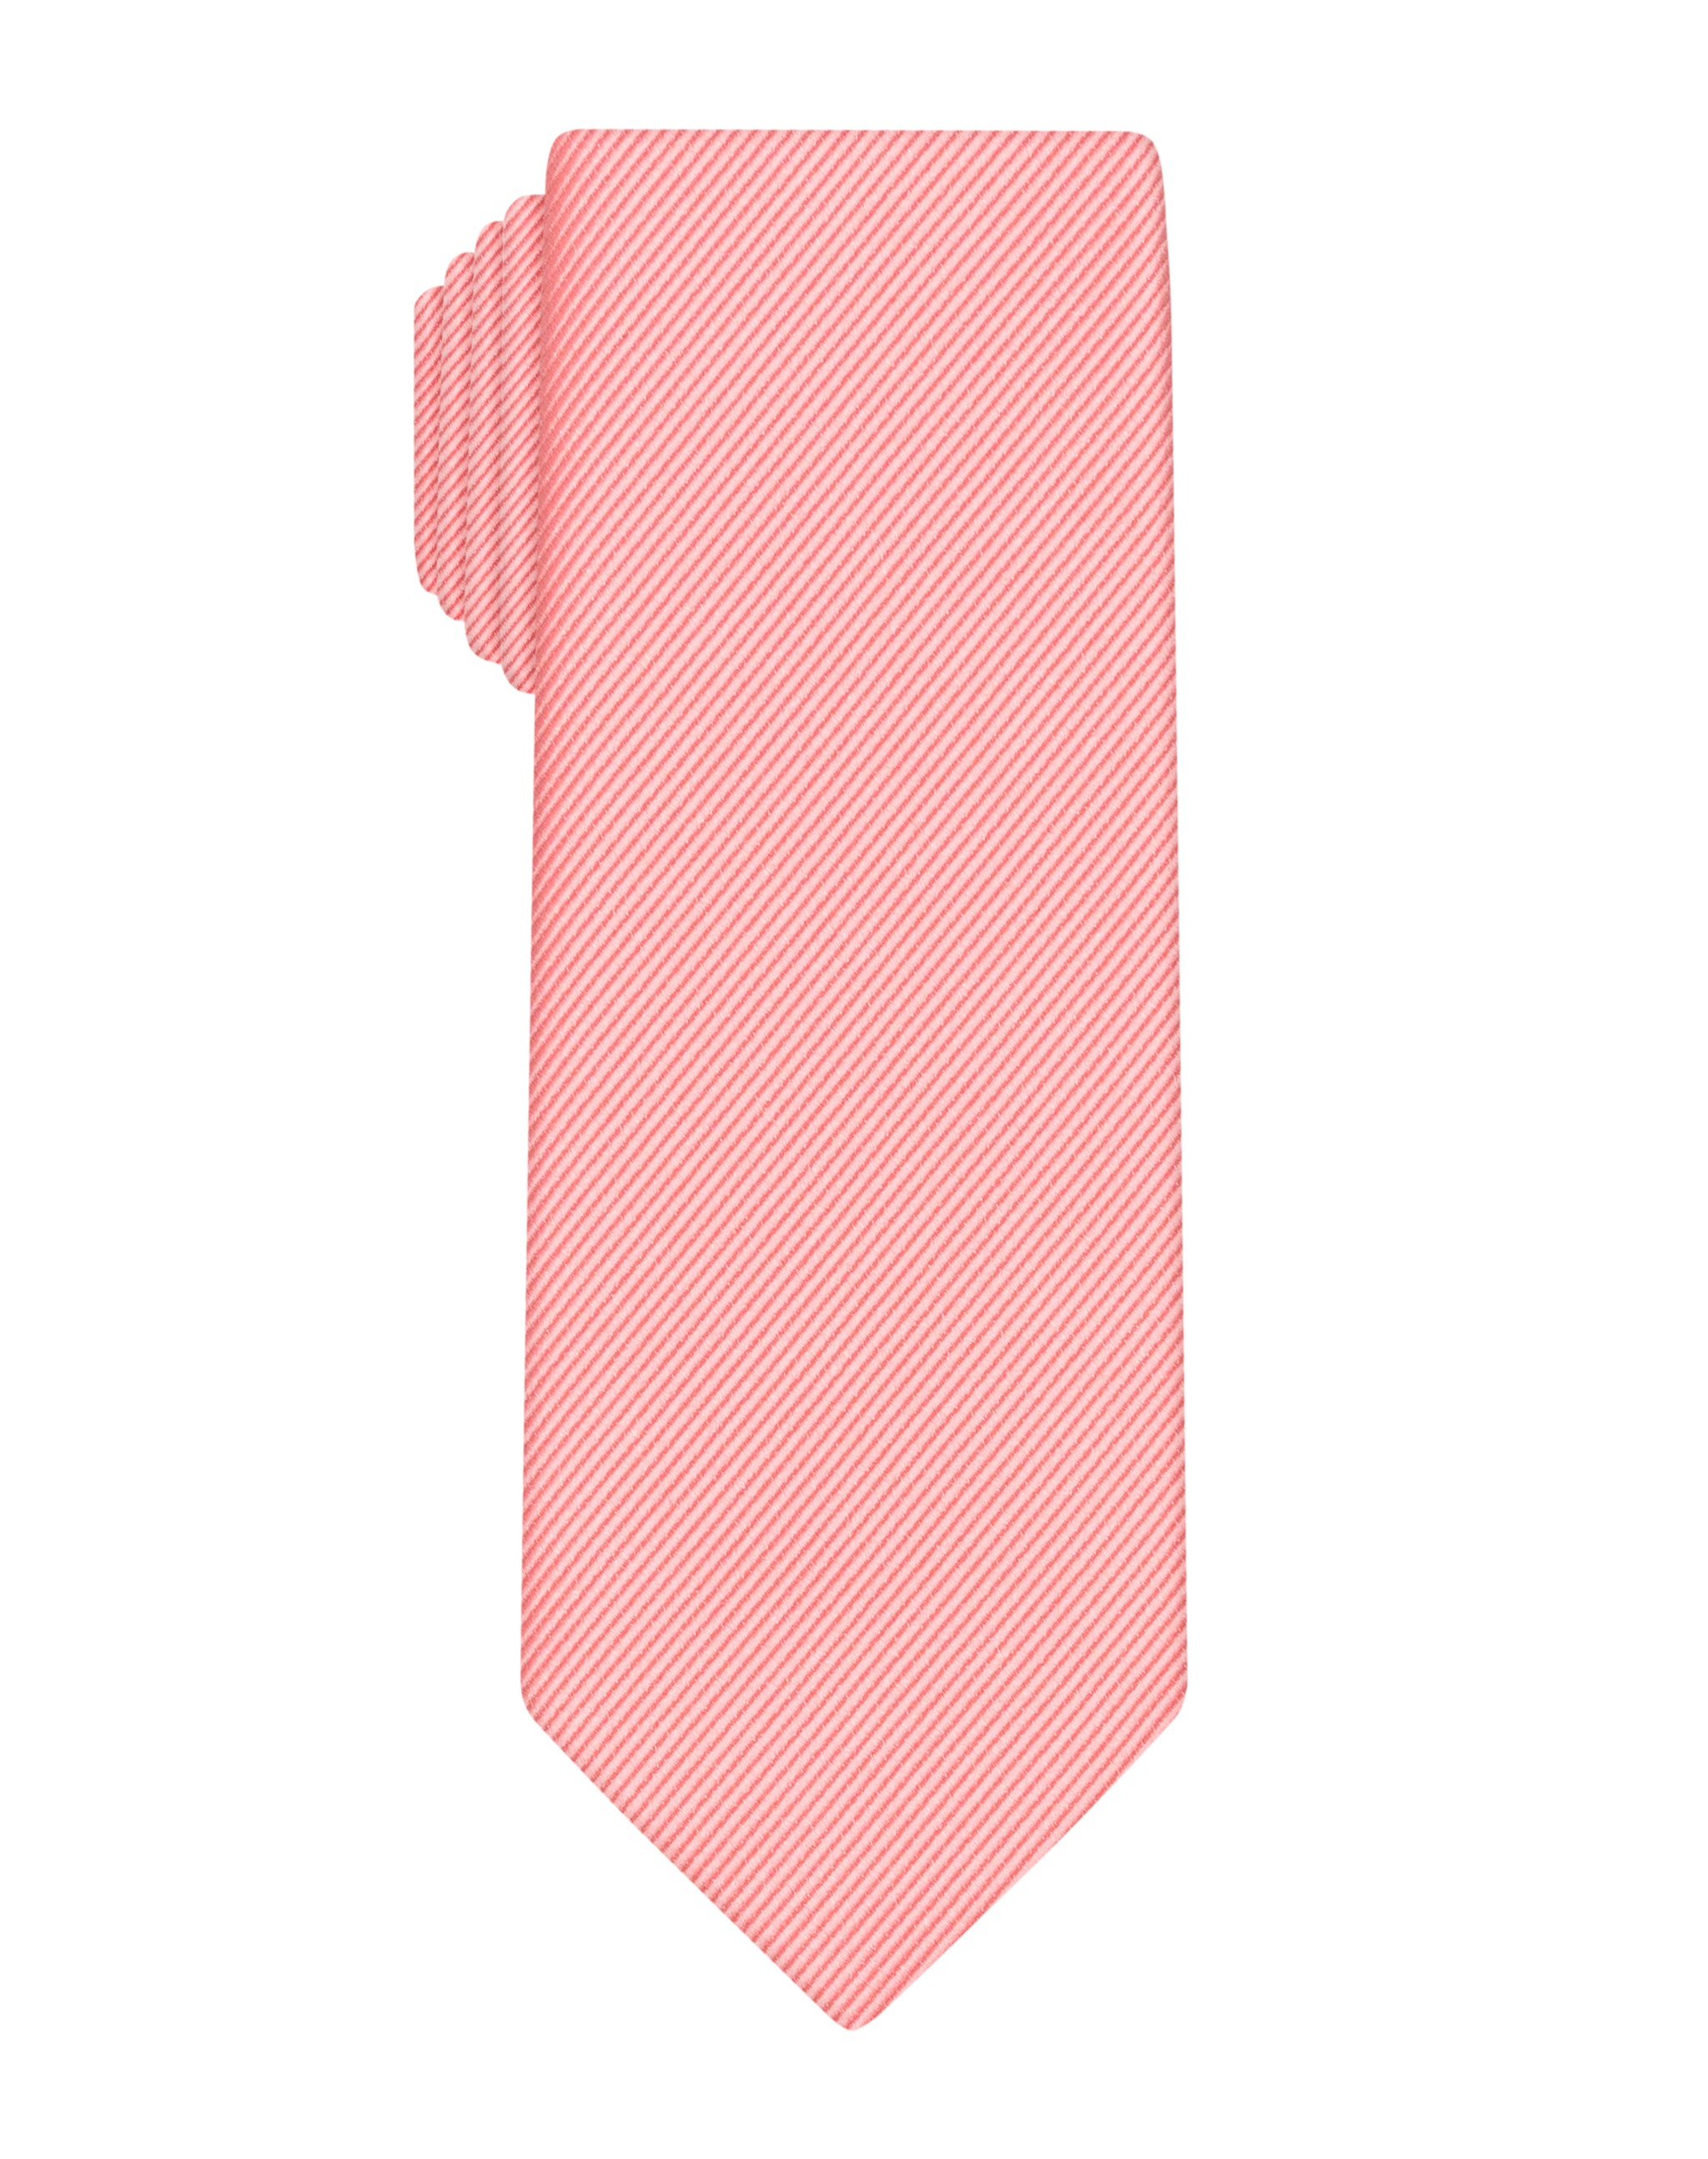 Pink Solid Heavy Twill Tie